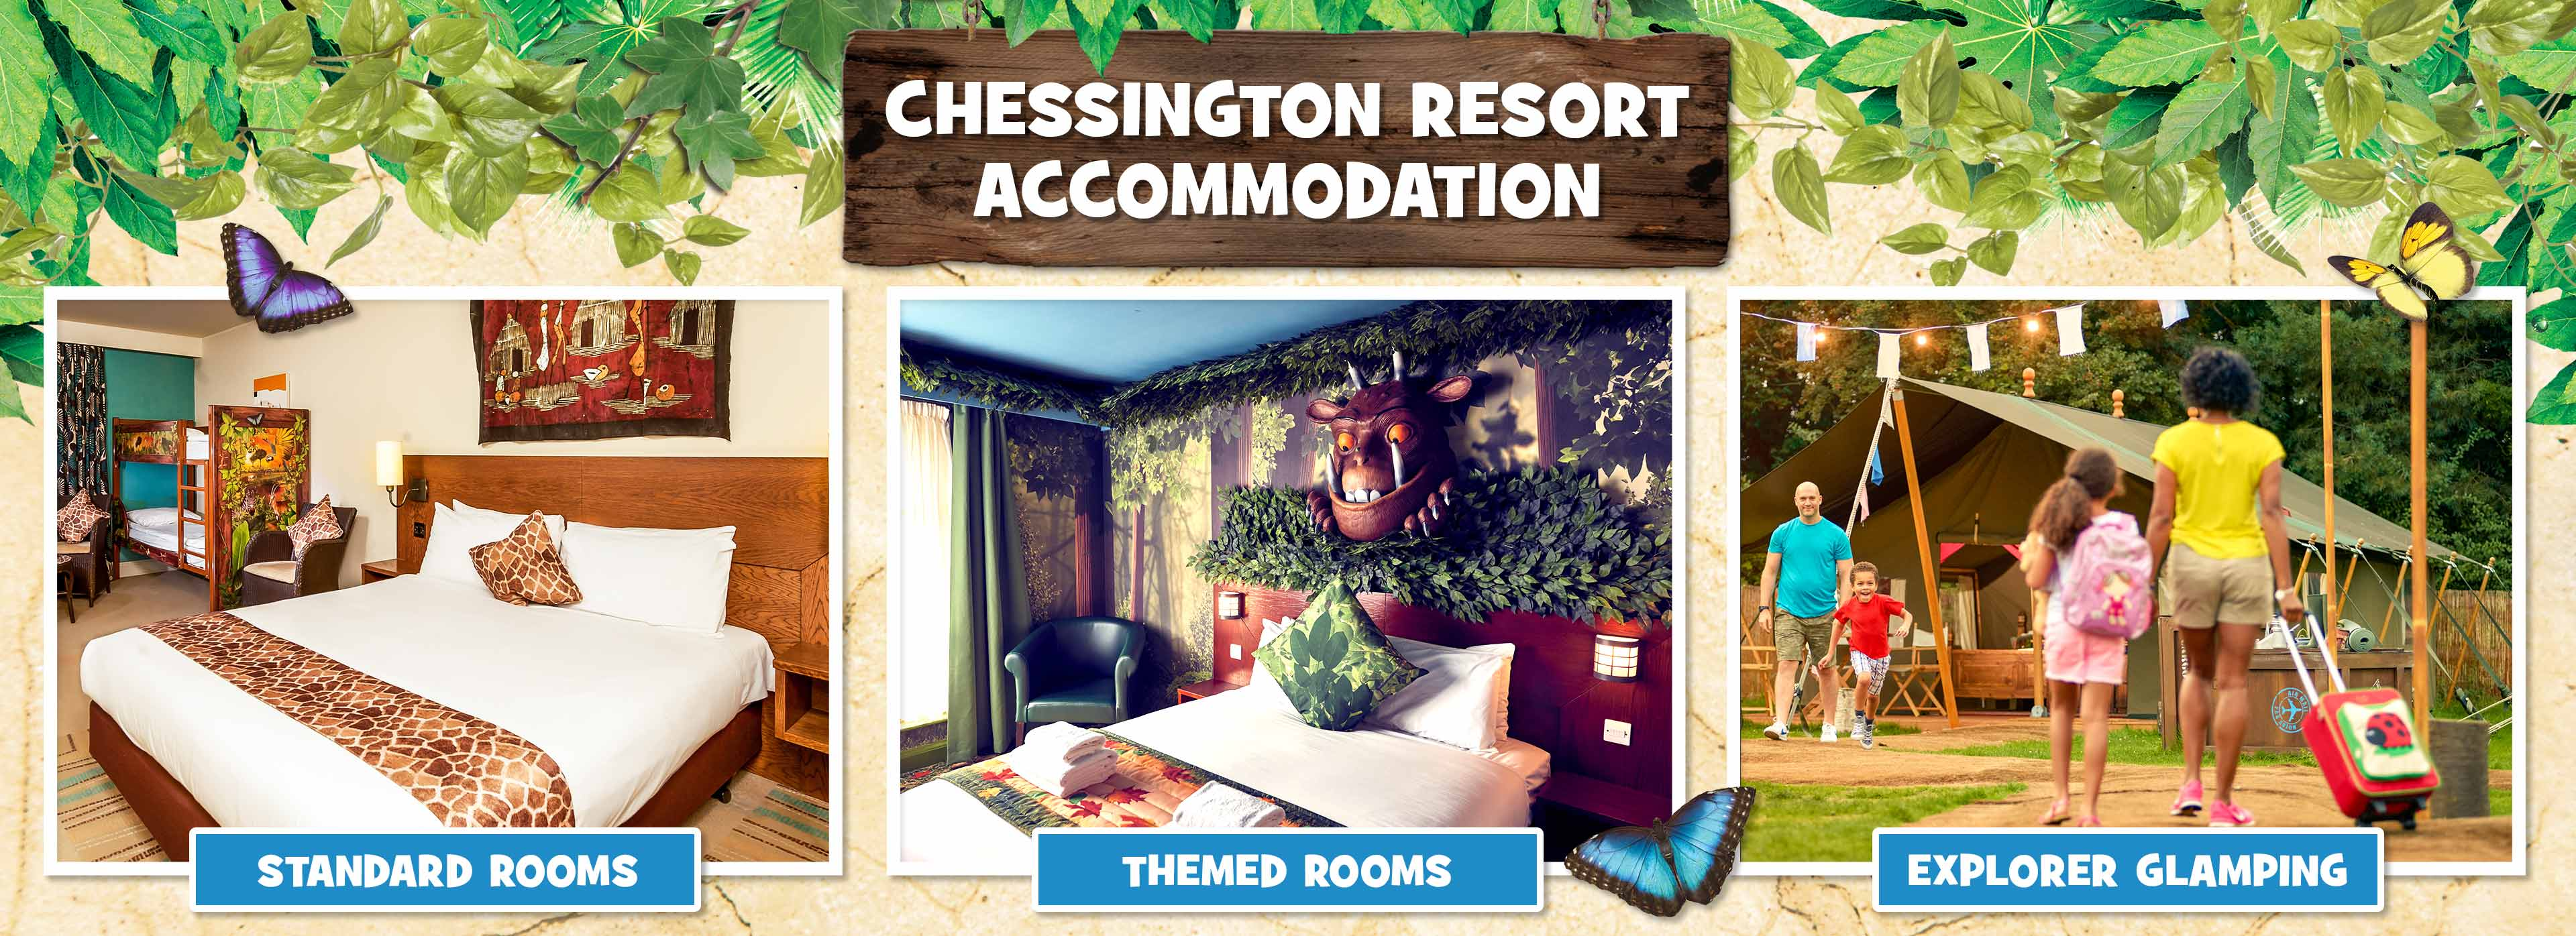 Resort hotels at Chessington